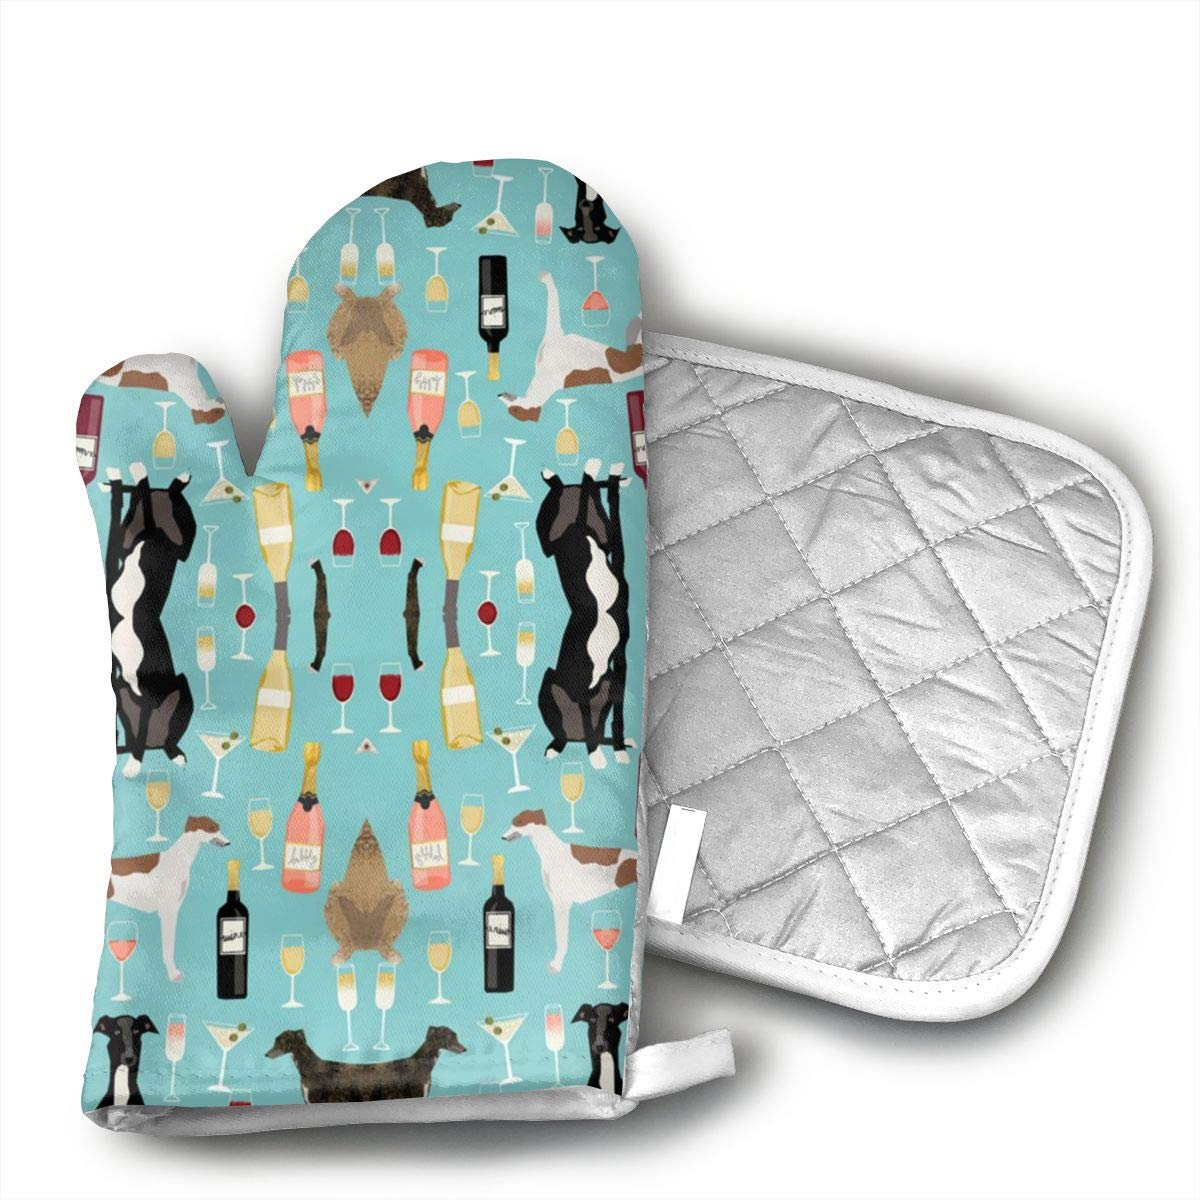 ujd Greyhounds And Wine Neoprene Oven Mitts and Potholder Set-Heat Resistant Oven Gloves to Protect Hands and Surfaces with Non-Slip Grip, Hanging Loop-Ideal for Handling Hot Cookware Items